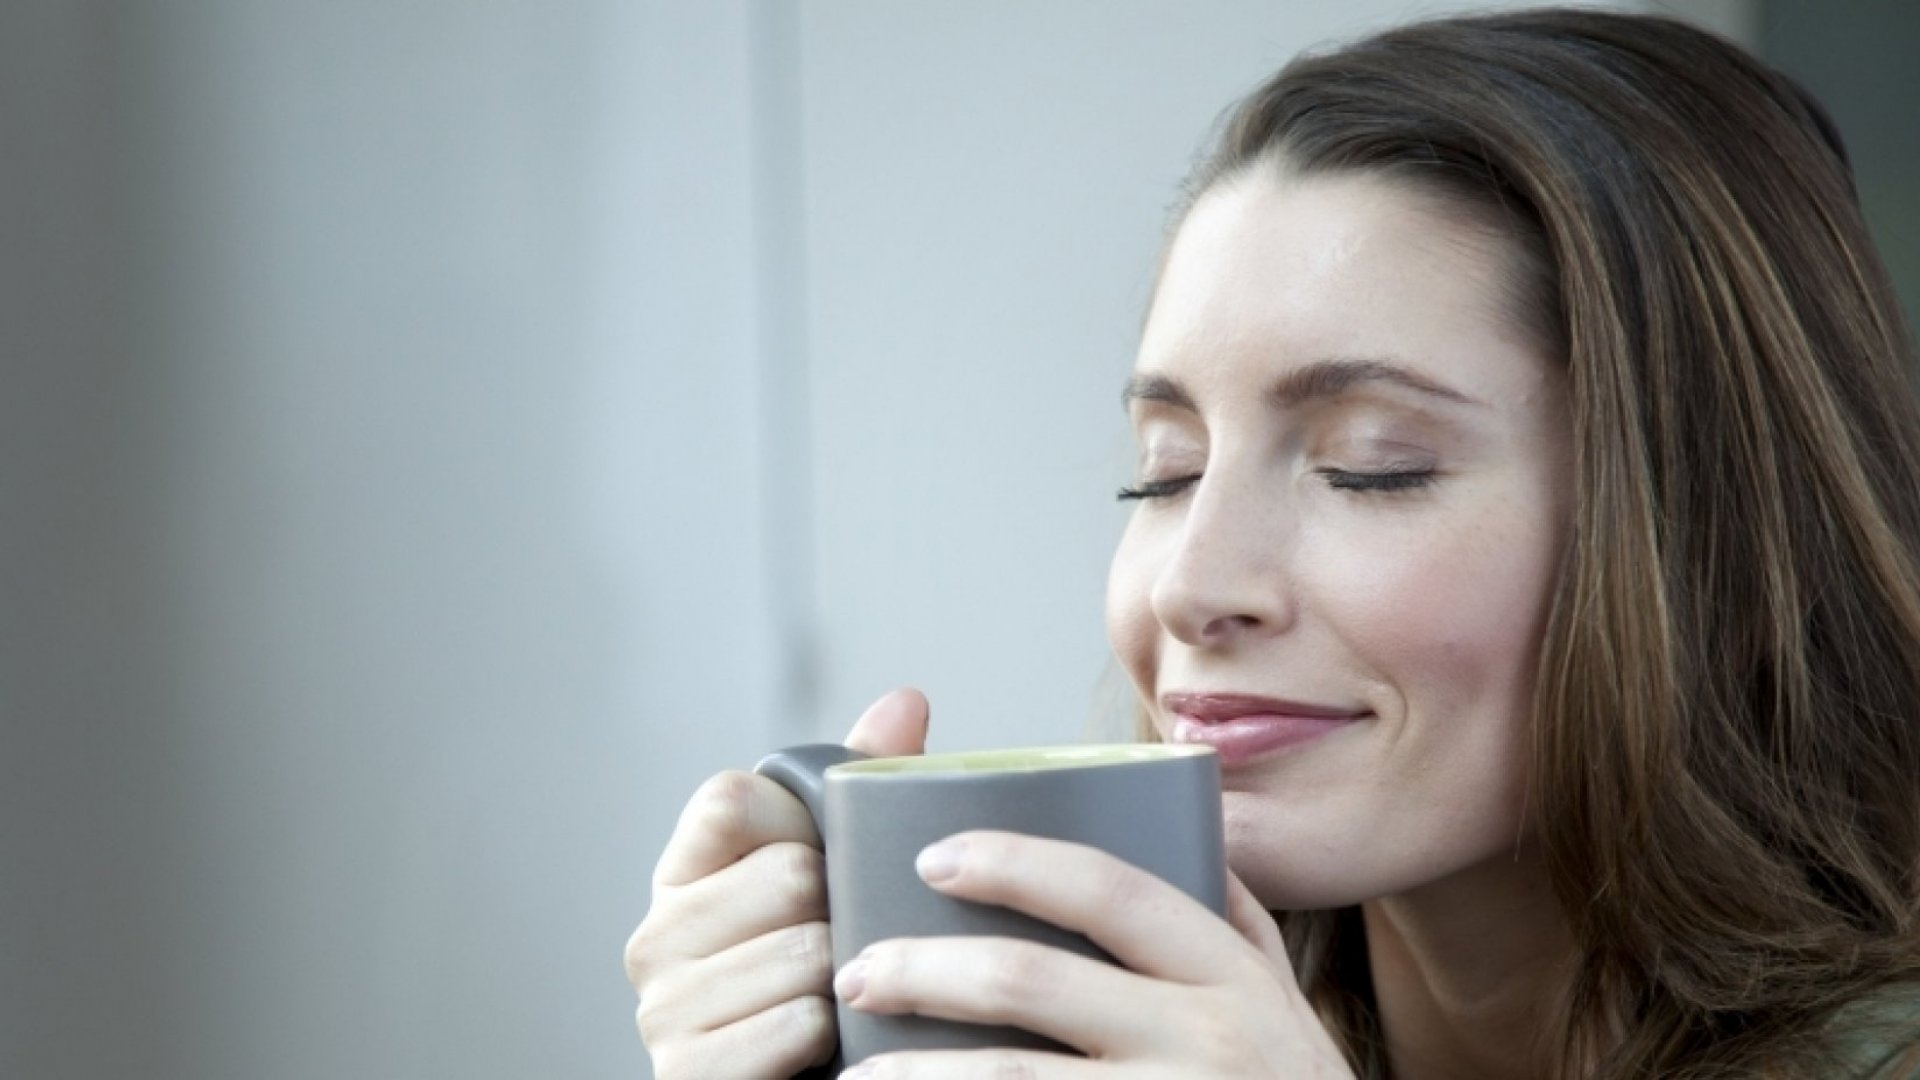 7 Coffee Alternatives for a Midday Energy Boost